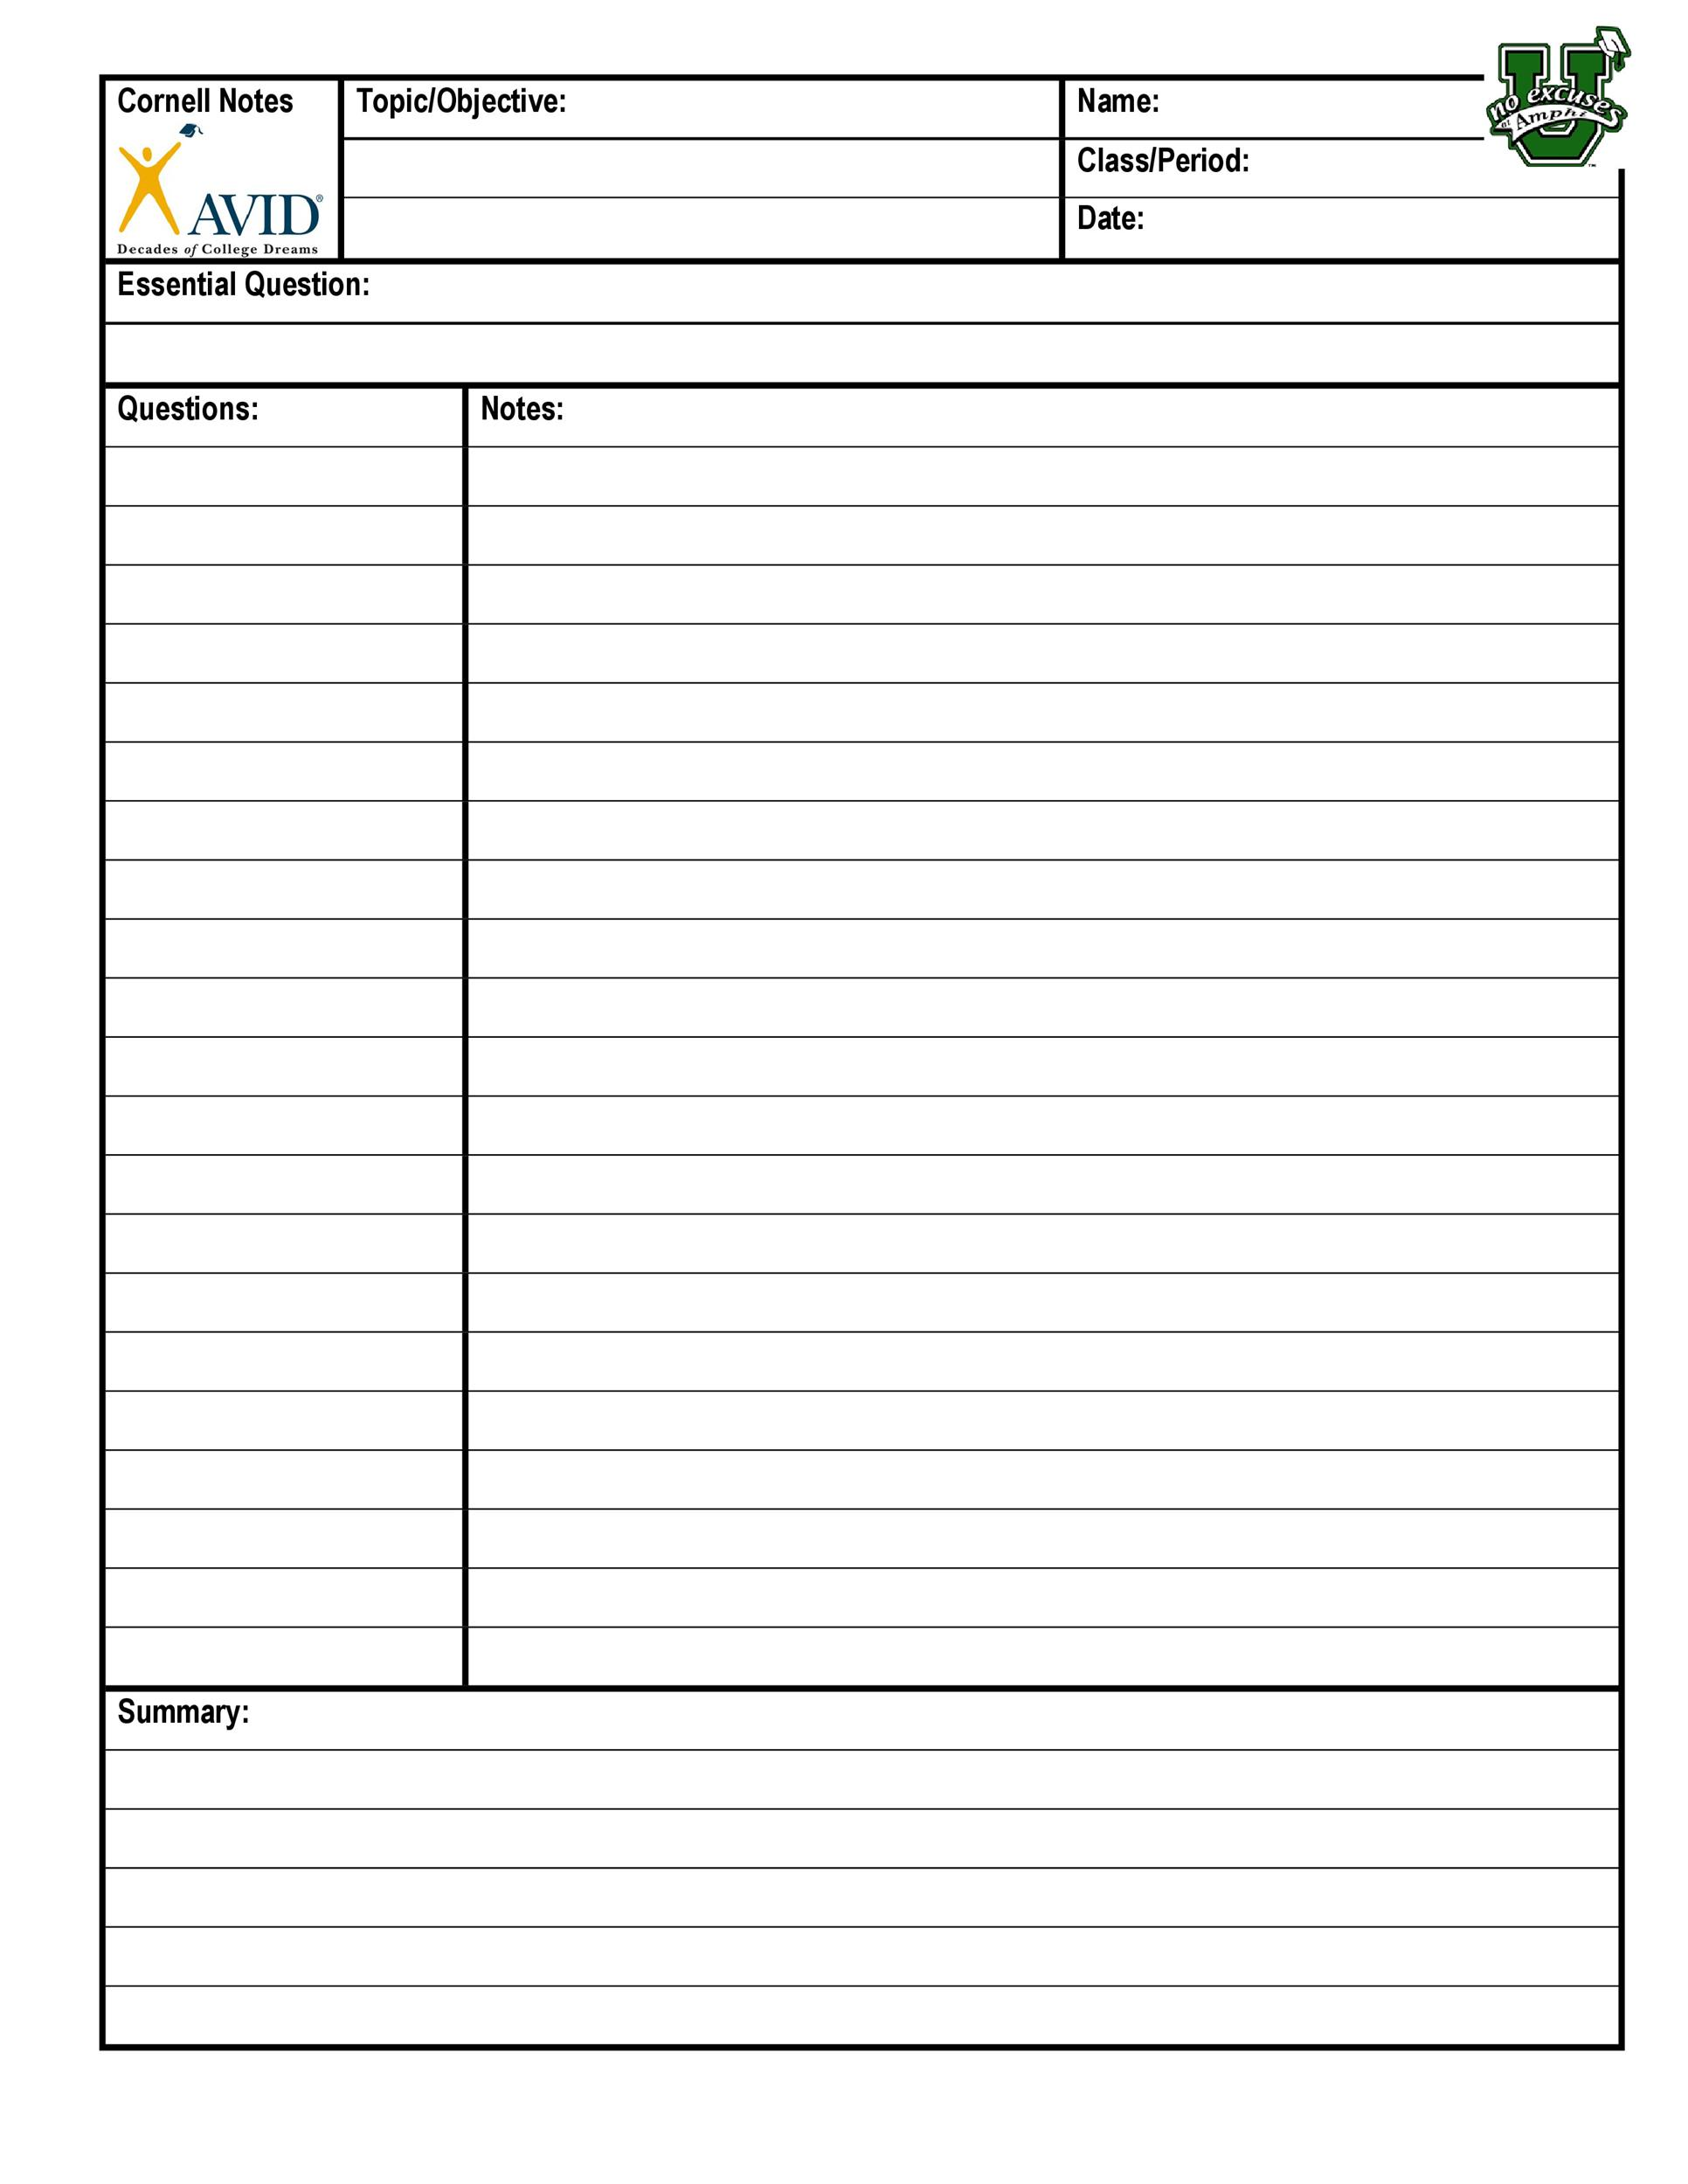 Free Cornell Notes Template 04